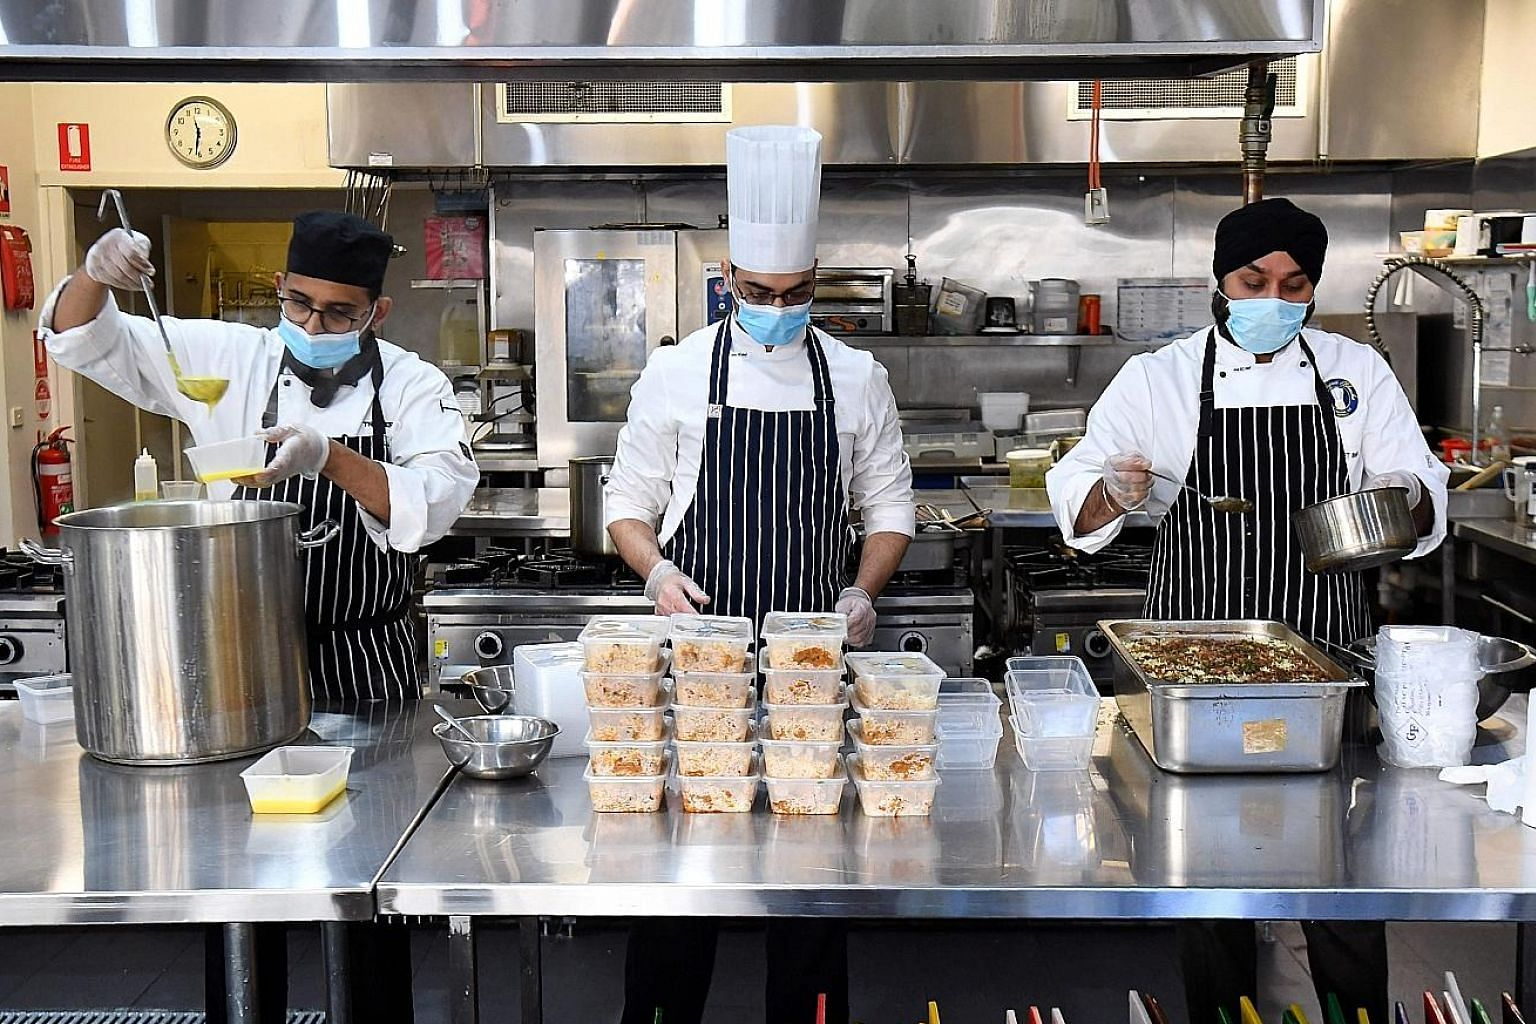 The Melbourne City Institute of Education's kitchen. Net immigration in Australia, including international students and those on skilled worker visas, is expected to fall 85 per cent in the fiscal year to June 2021, curbing demand for everything from